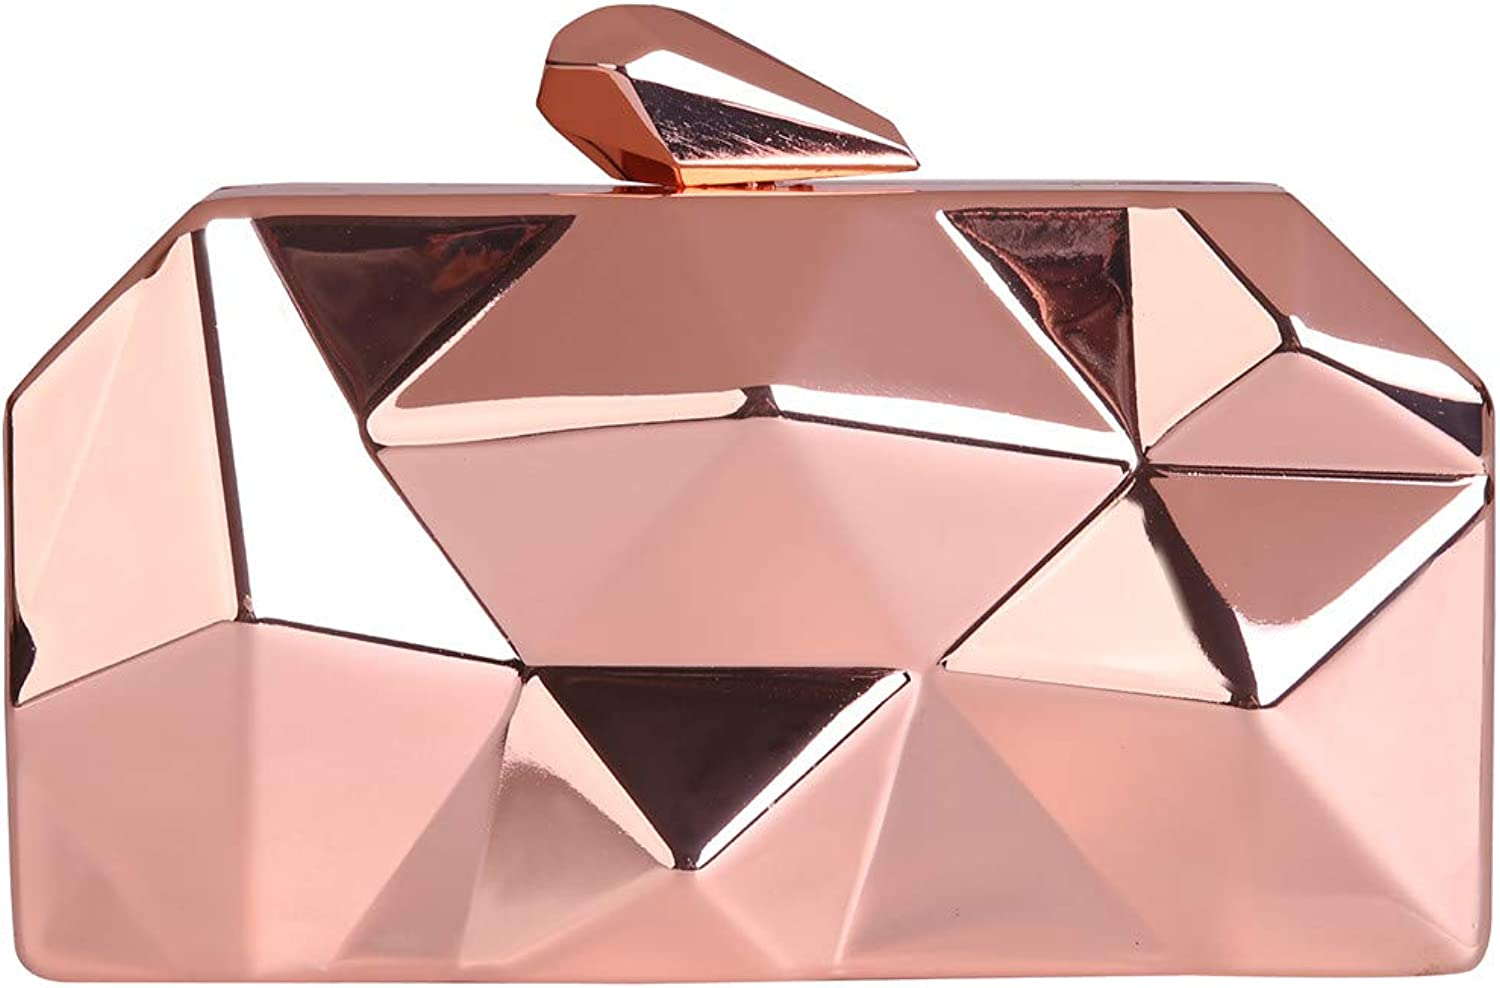 3D Metallic Evening Clutch For Party (champangne)